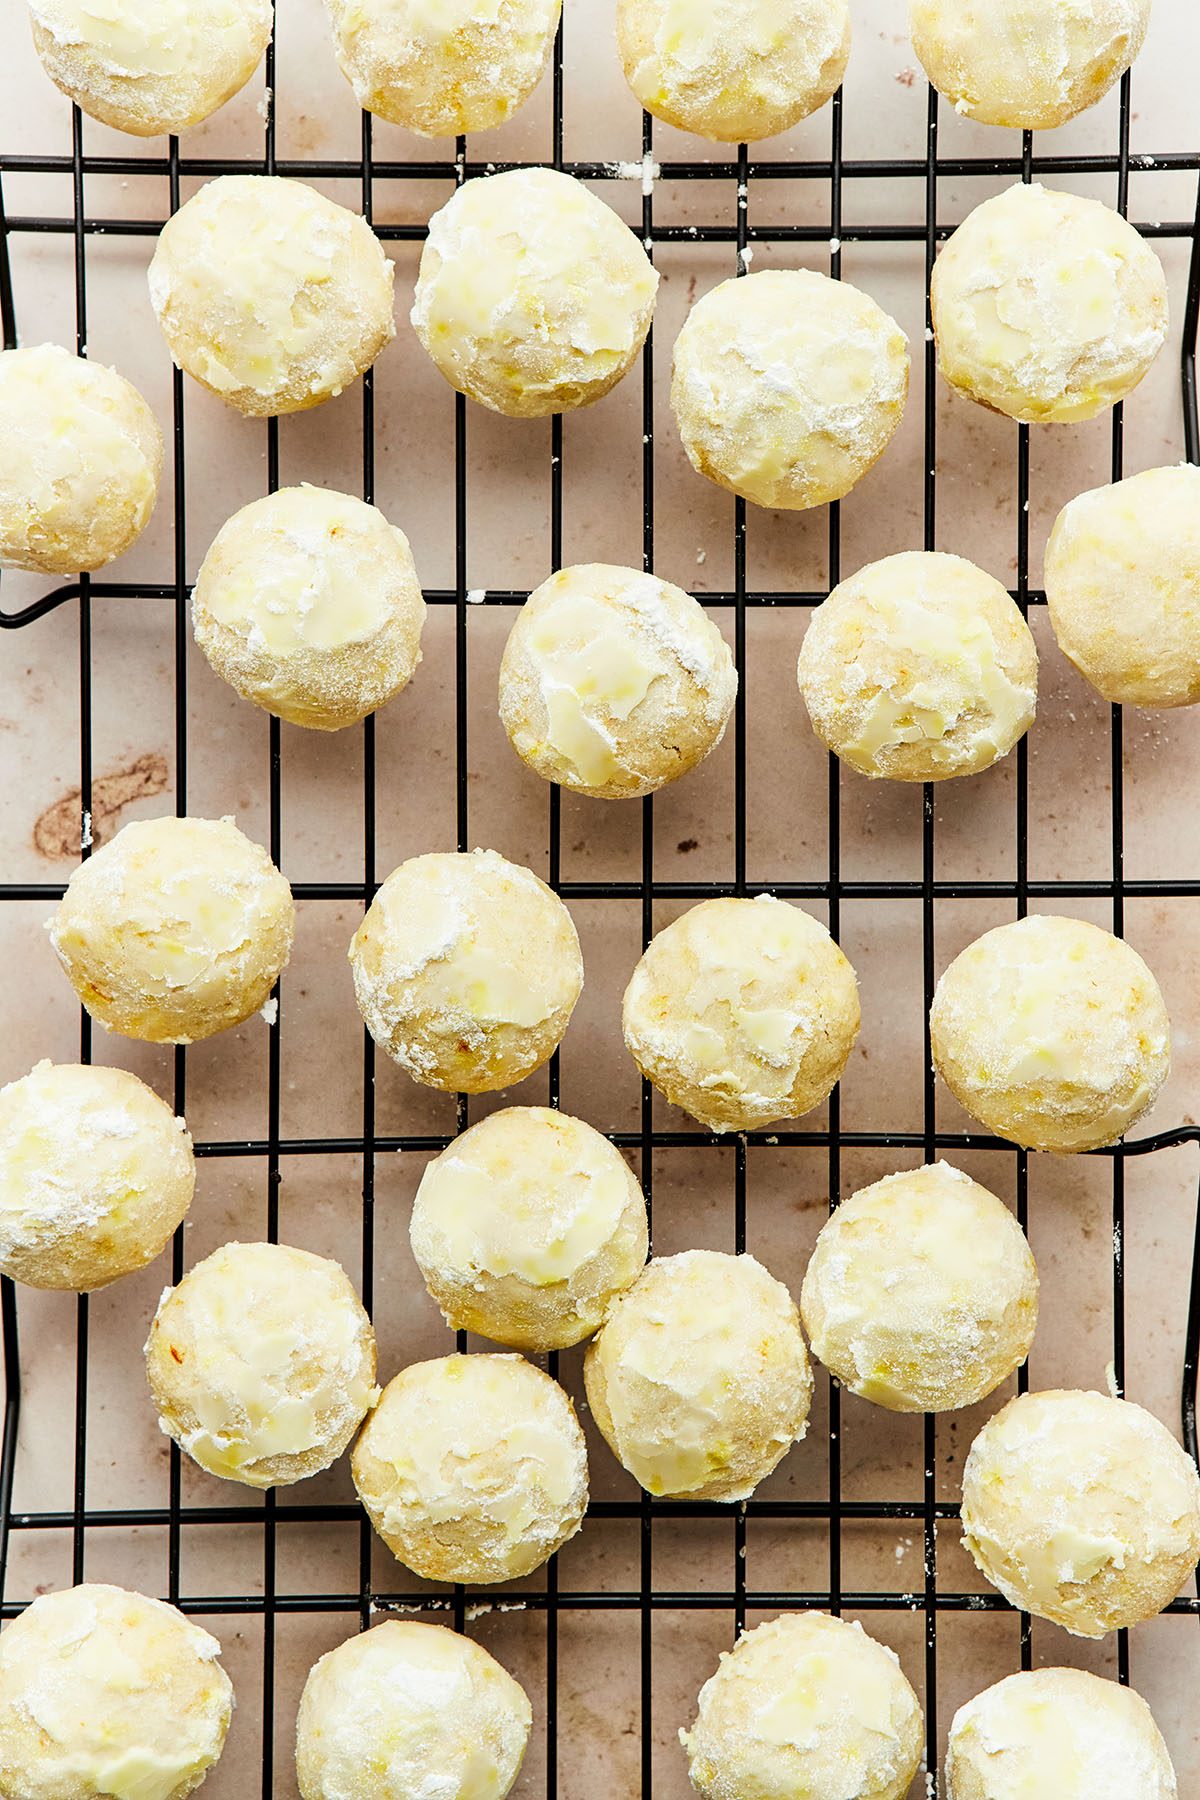 Close up overhead of Mexican wedding cookies which have been rolled in powdered sugar while warm to create a light glaze on the cookies.